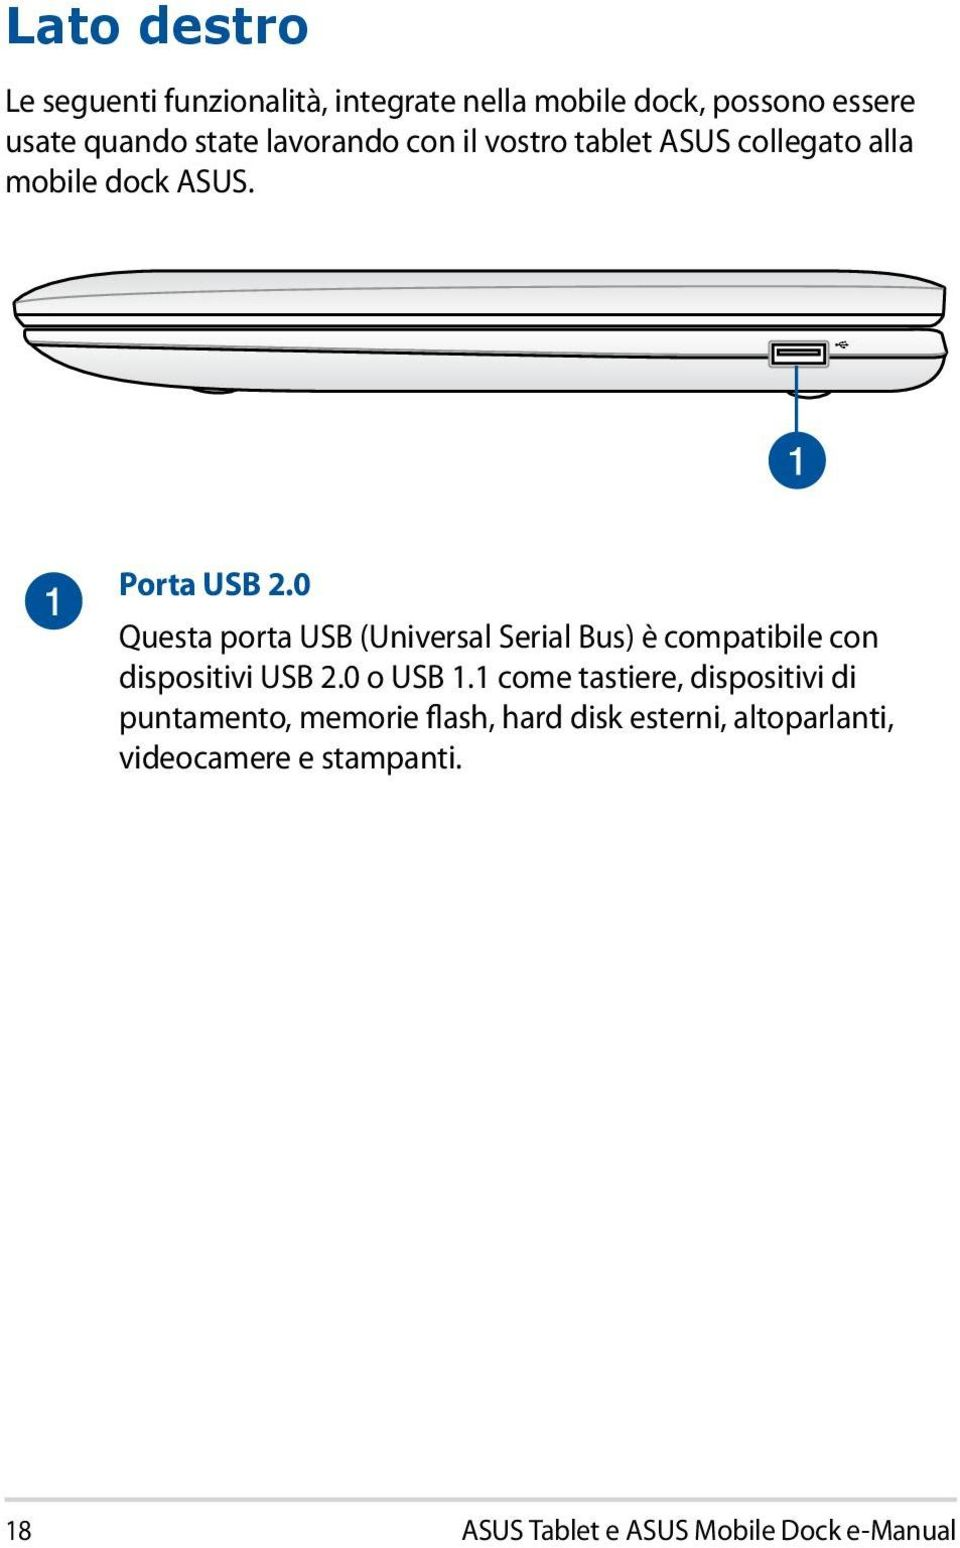 0 Questa porta USB (Universal Serial Bus) è compatibile con dispositivi USB 2.0 o USB 1.